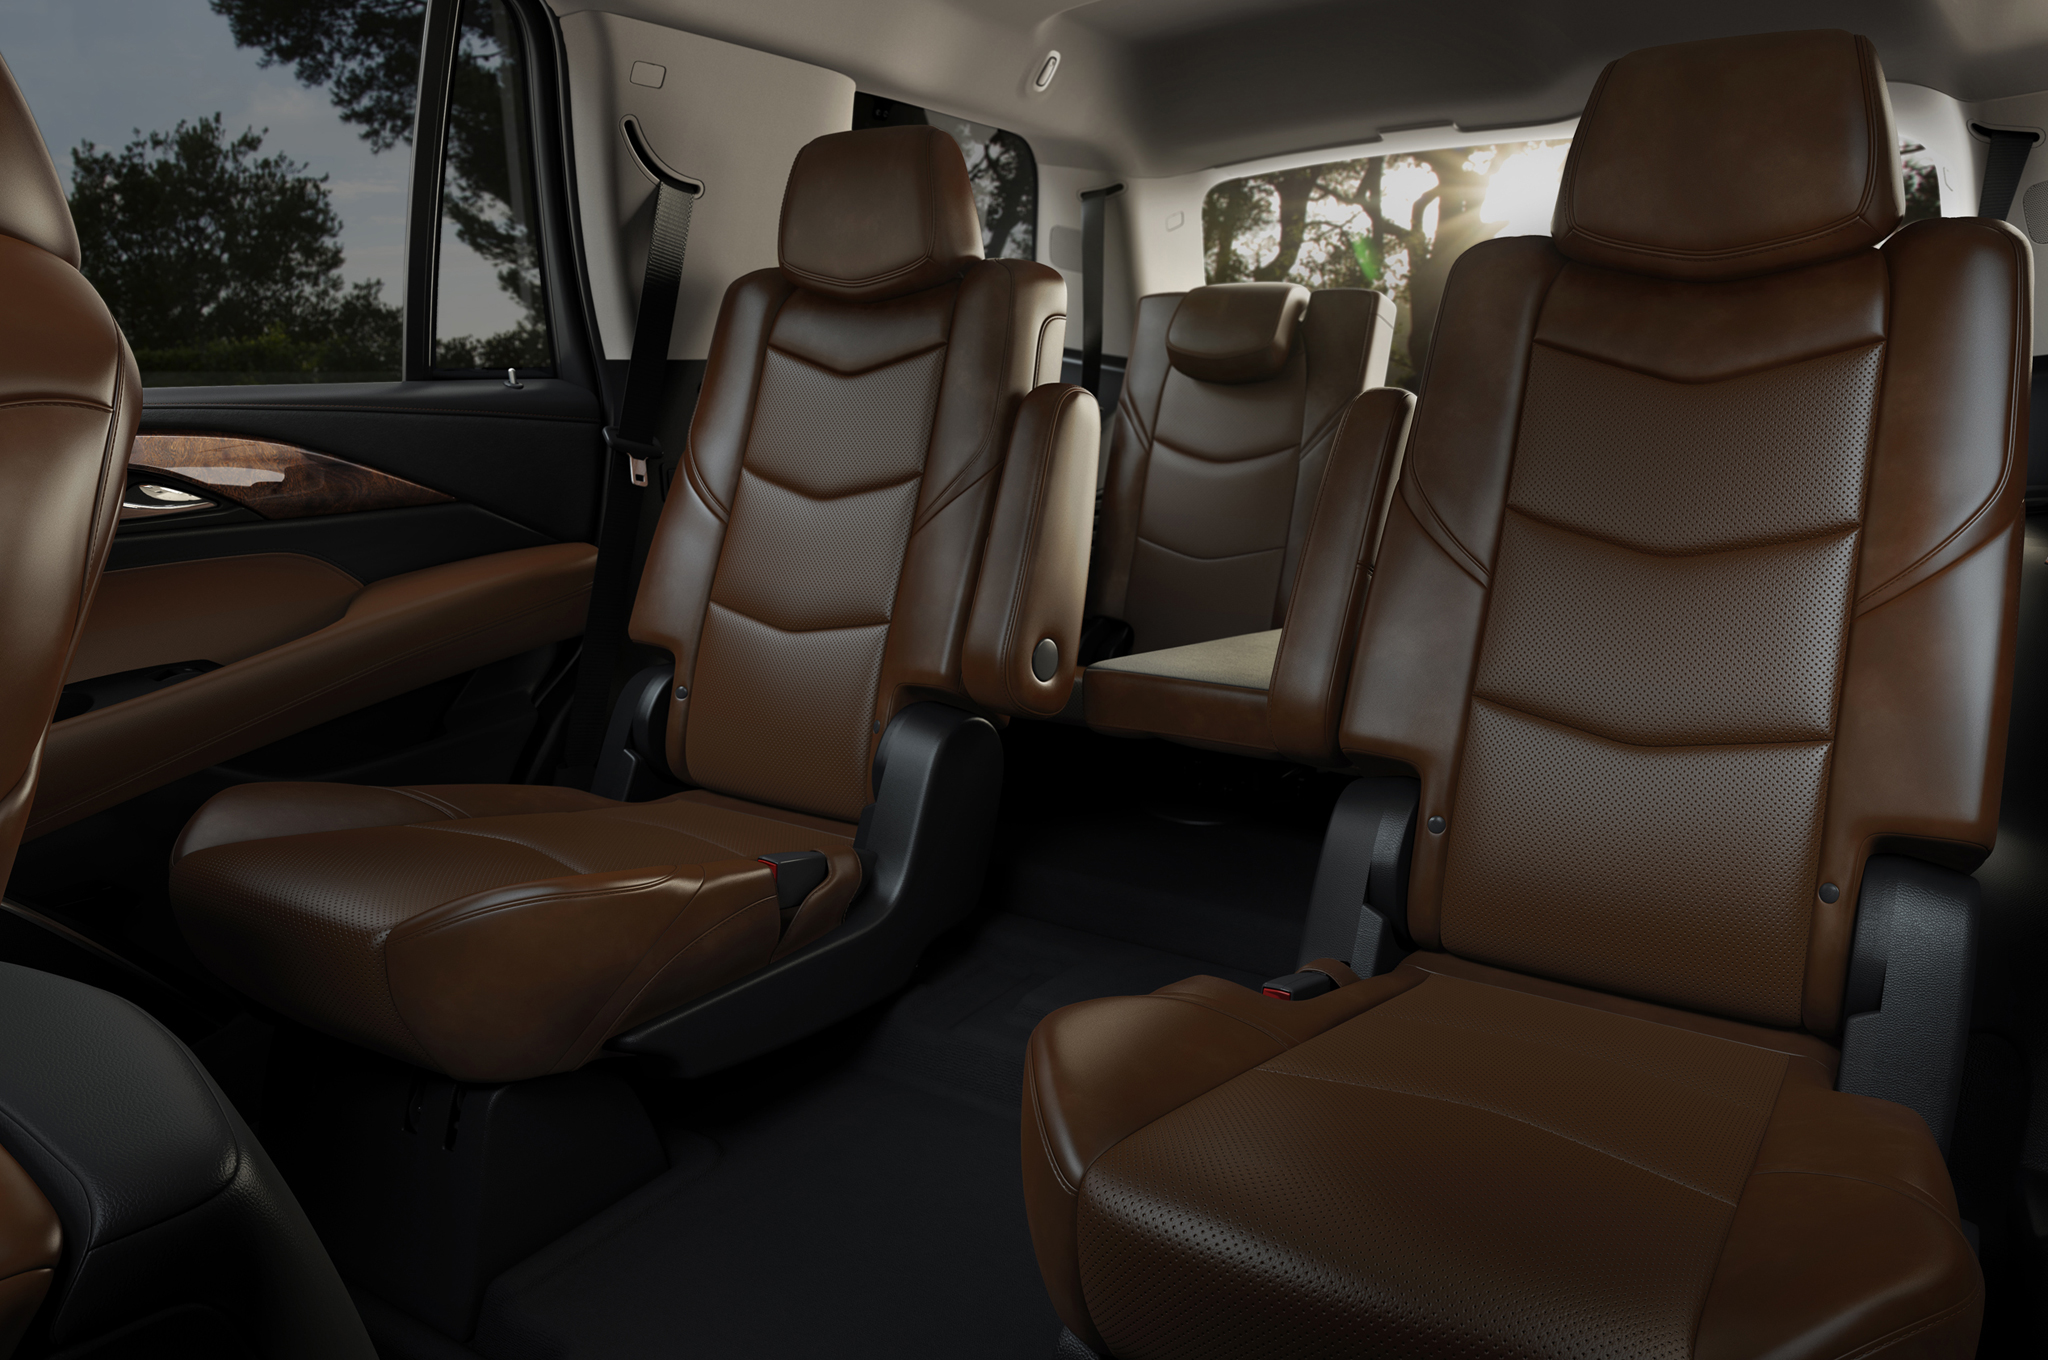 2015 Cadillac Escalade ESV Premium Interior Wallpaper   New York Car Service